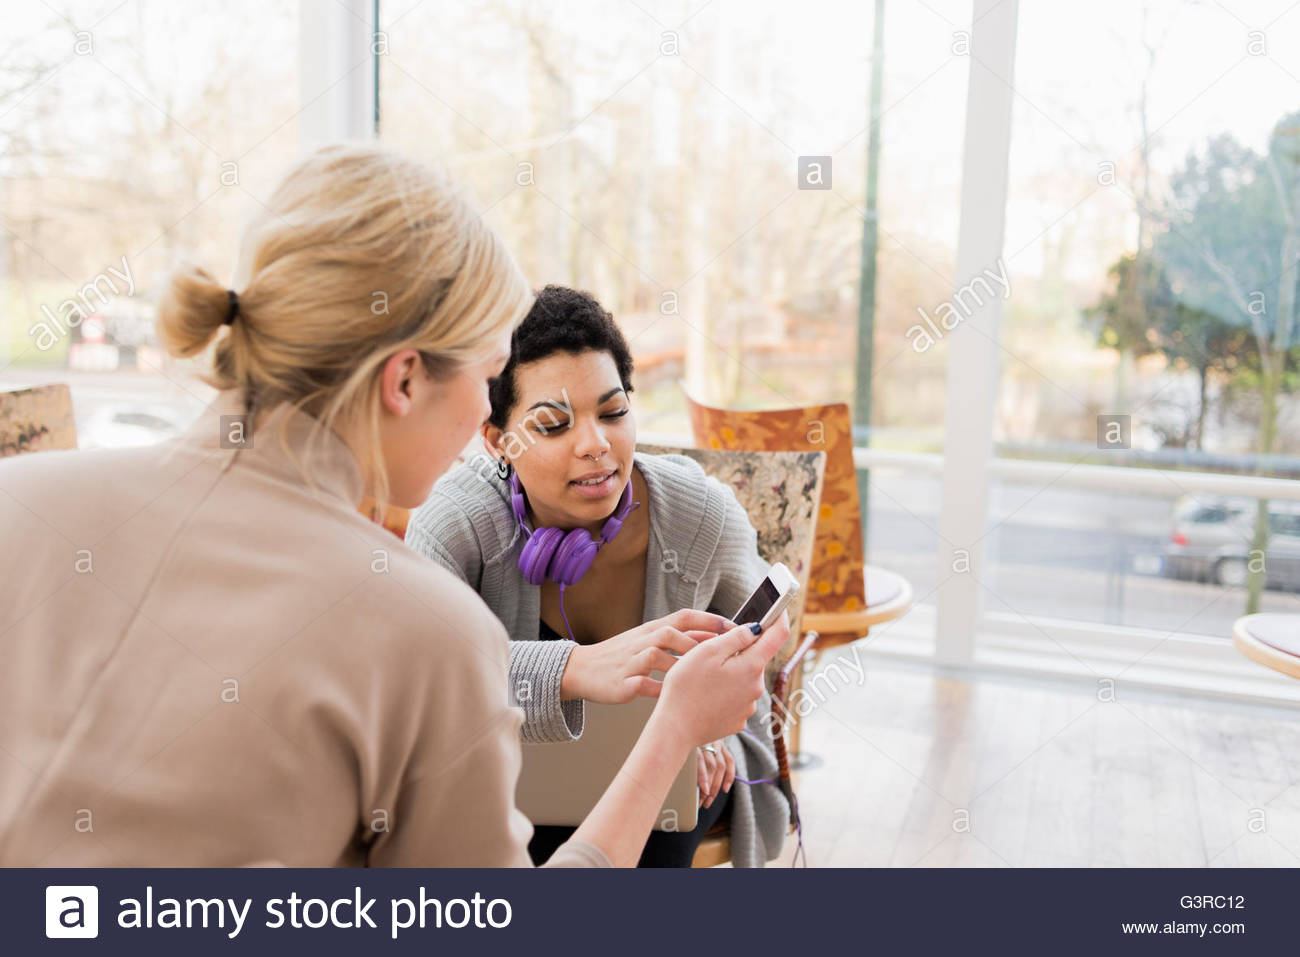 Sweden, Two young women looking at smartphone - Stock Image